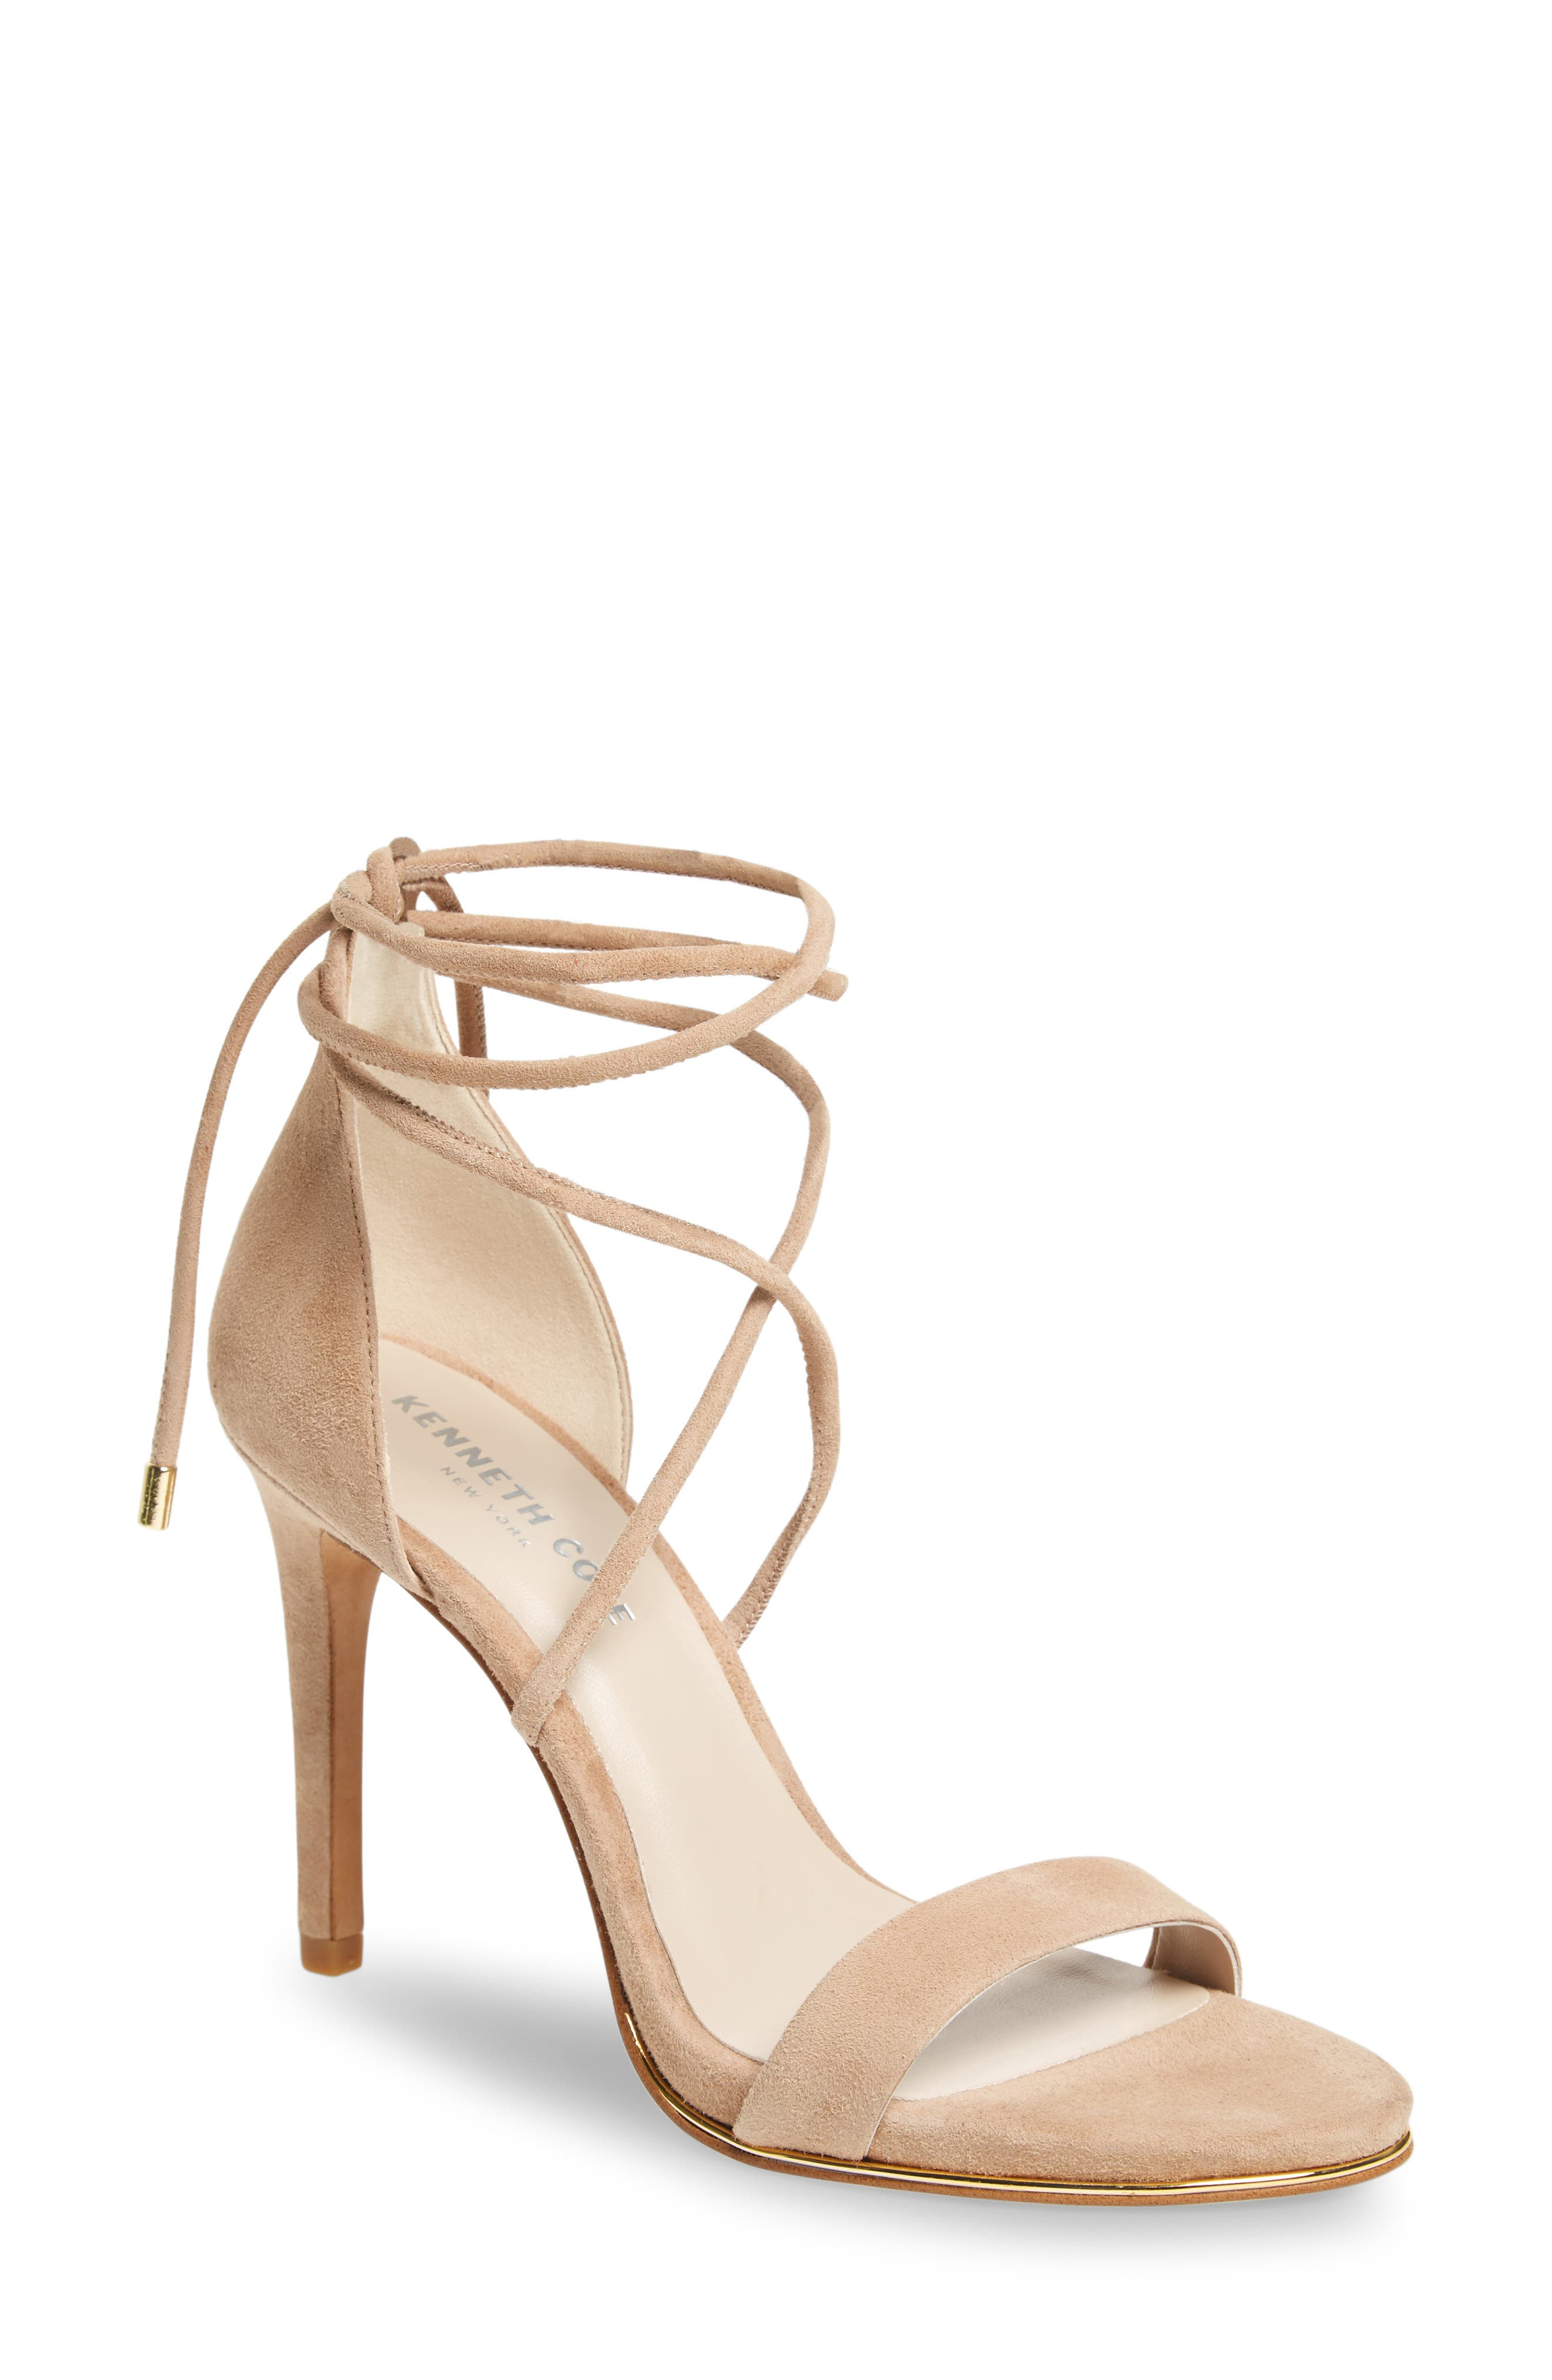 KENNETH COLE NEW YORK Berry Wraparound Sandal, Main, color, ALMOND SUEDE